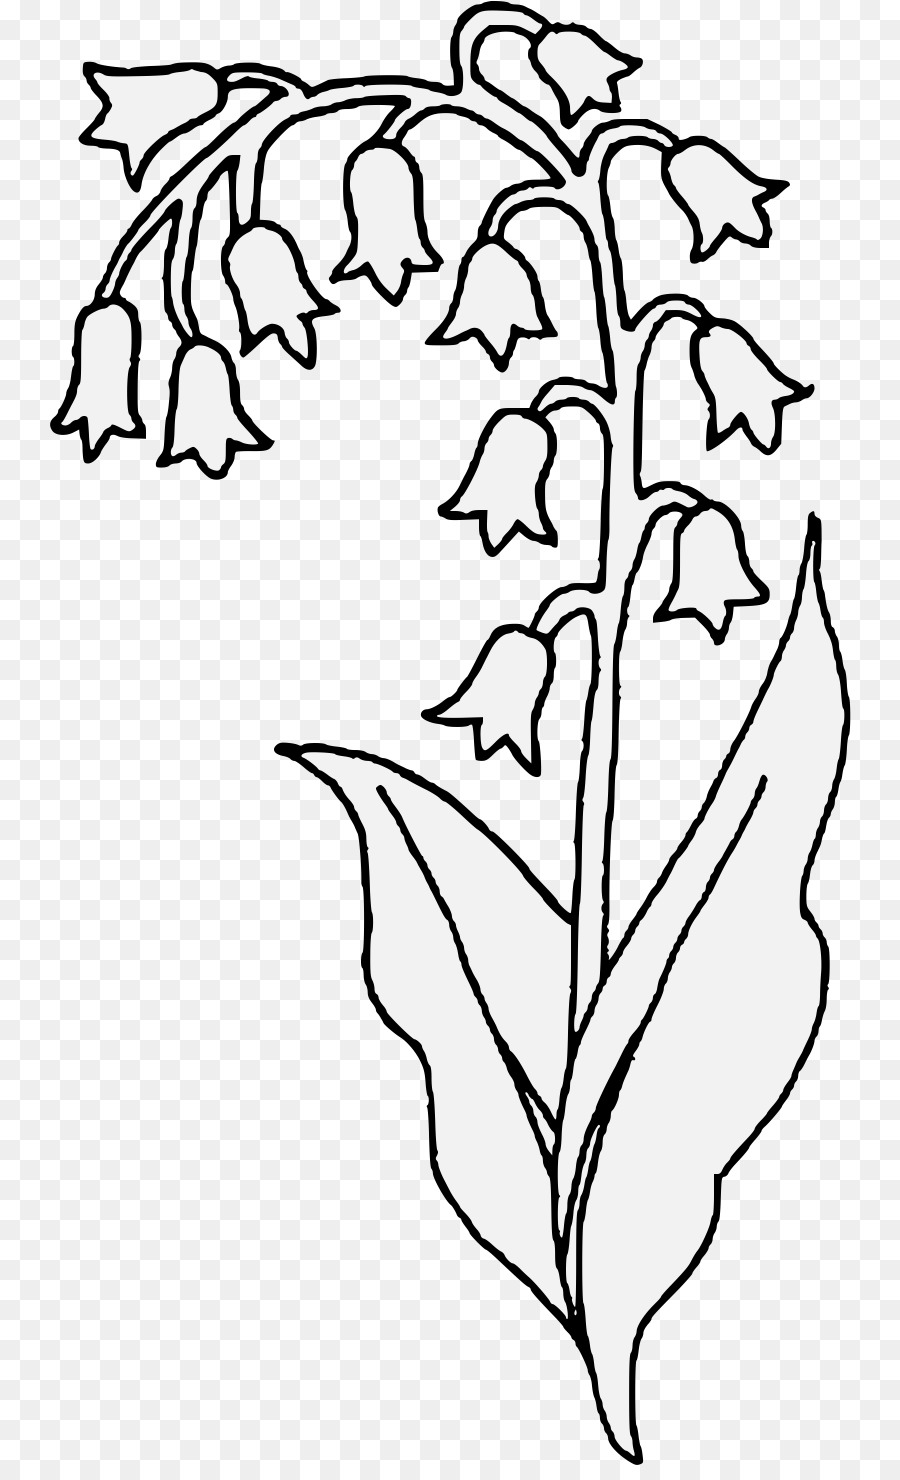 Lily stem flower black and white clipart banner black and white download Black And White Flower png download - 804*1467 - Free ... banner black and white download